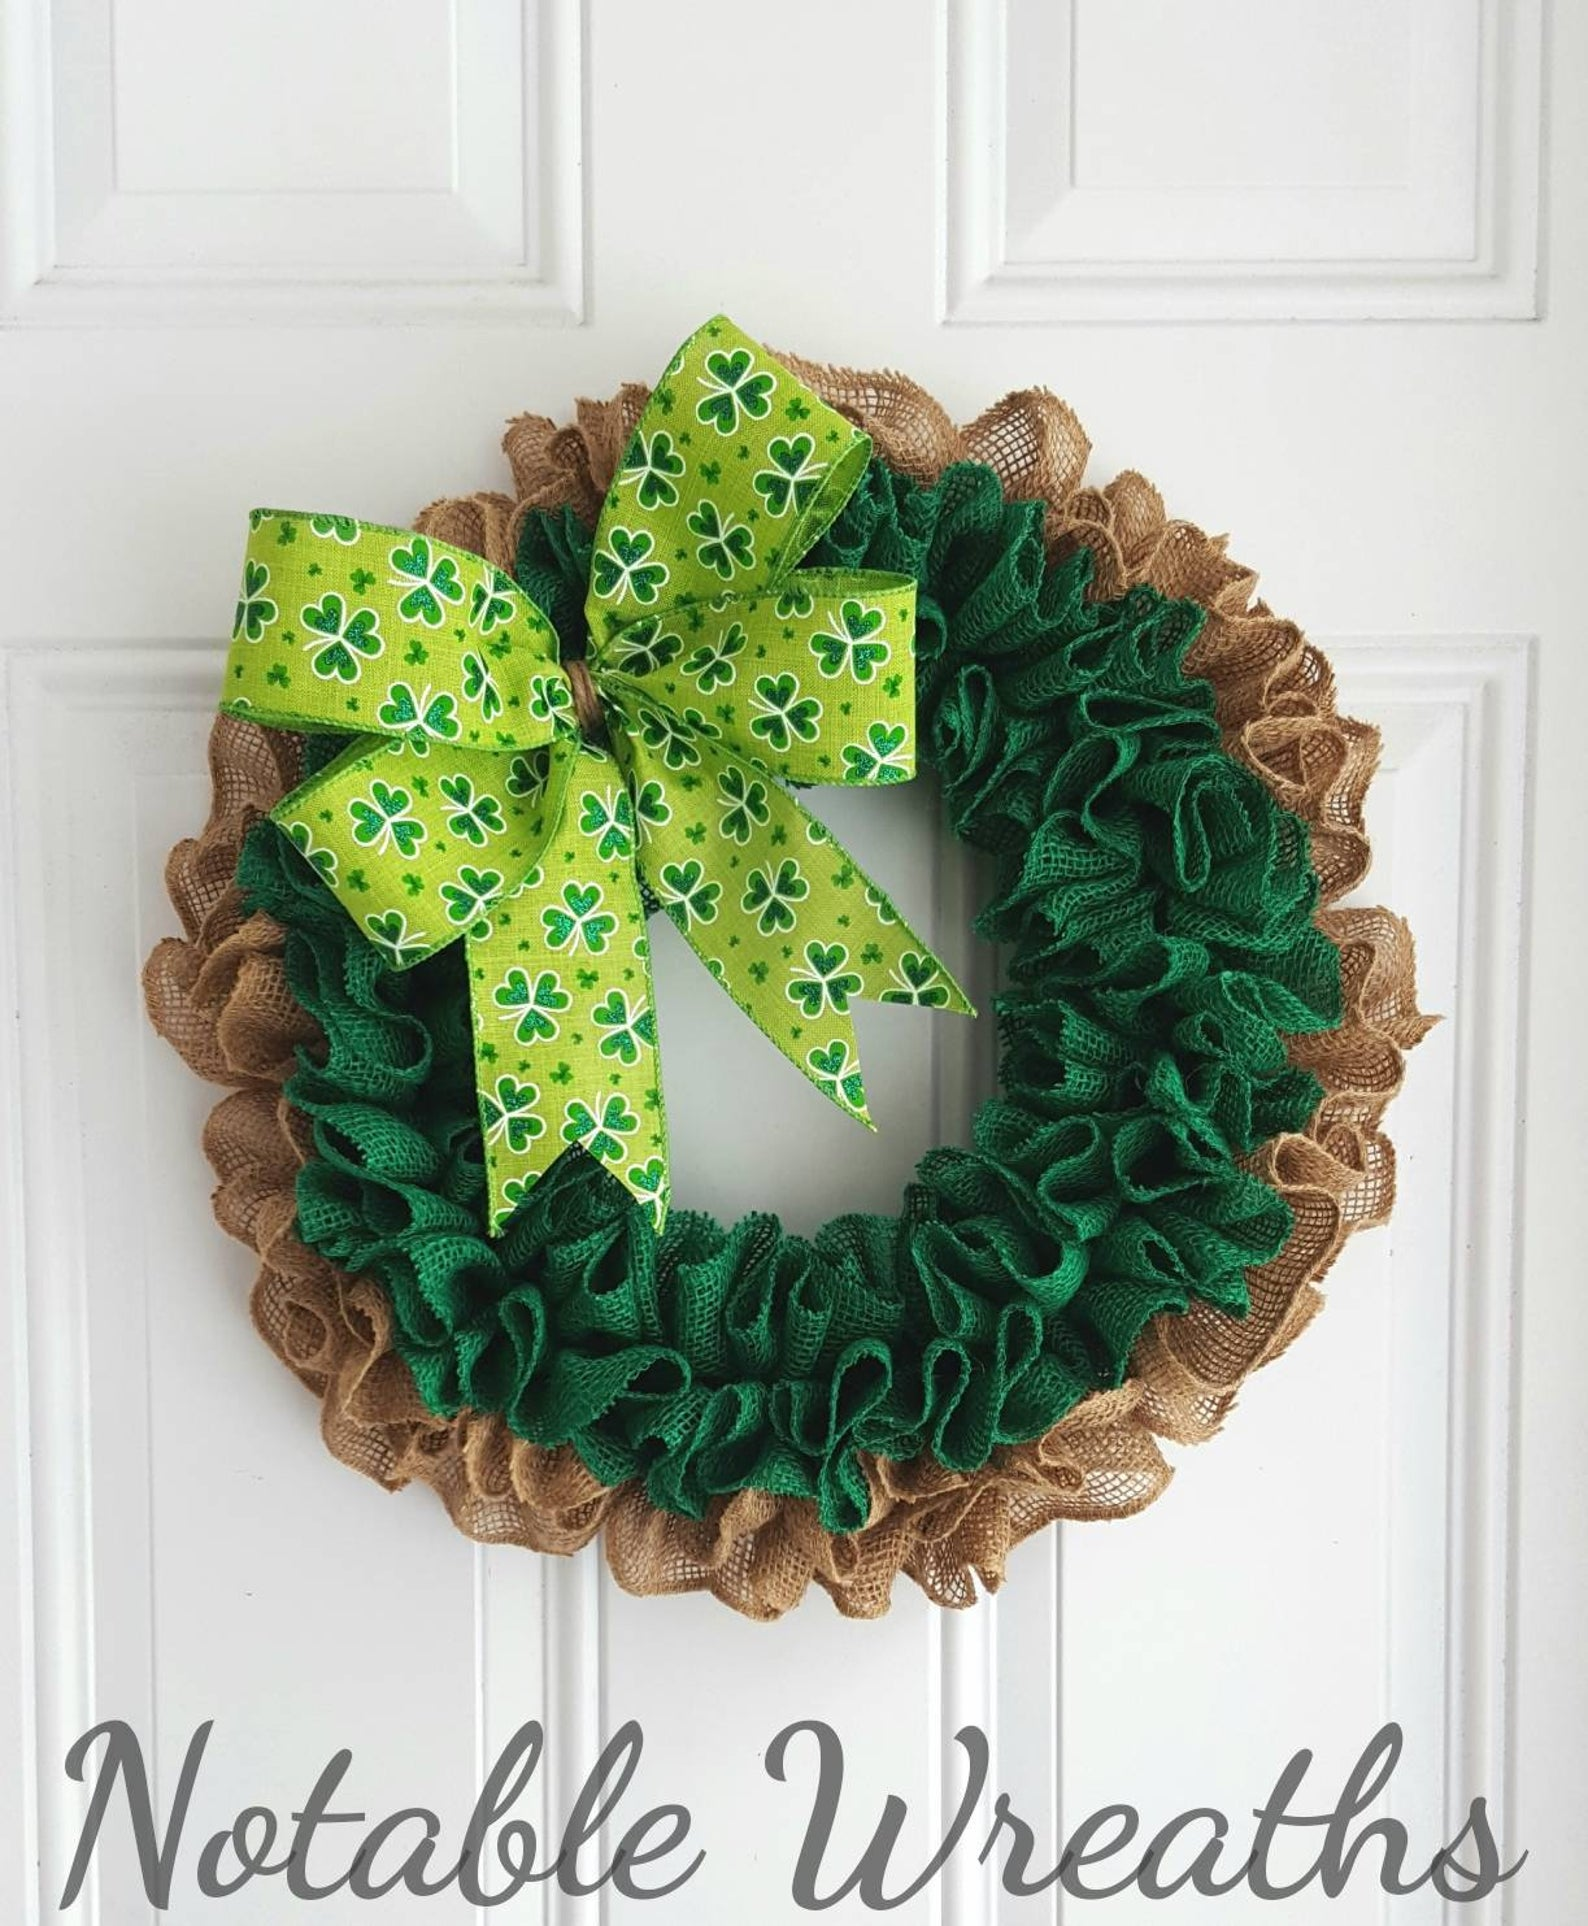 Decoration ideas for St. Patrick & # 39; s Day - wreaths for St. Patrick & # 39; s Day